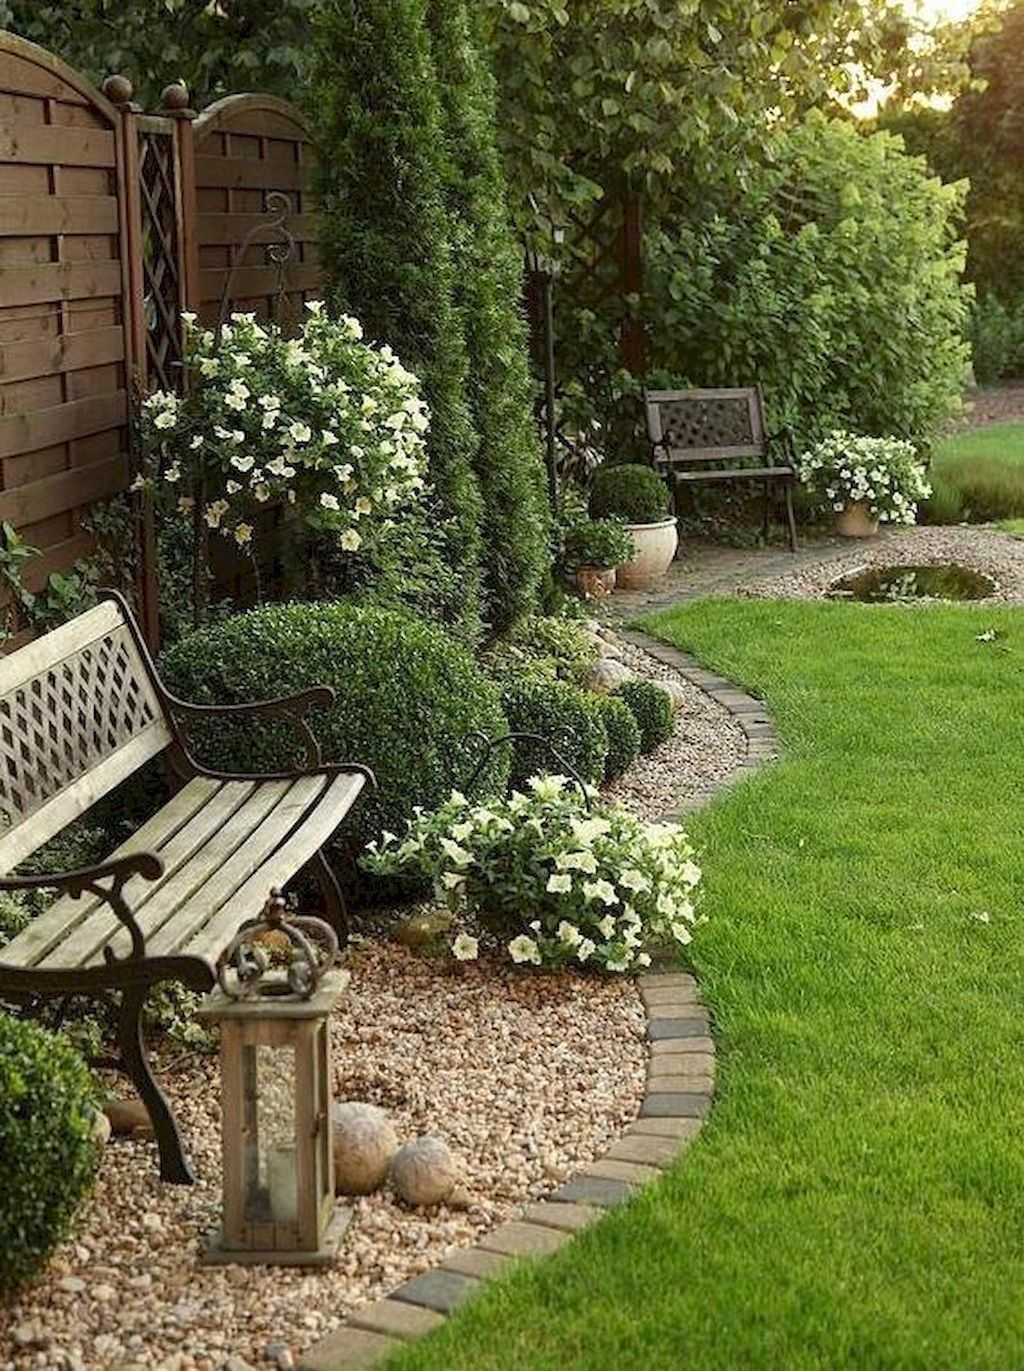 All About Backyard Landscaping Ideas On A Budget Small Layout Patio Low Maintenance Front Yard Landscaping Design Porch Landscaping Courtyard Landscaping